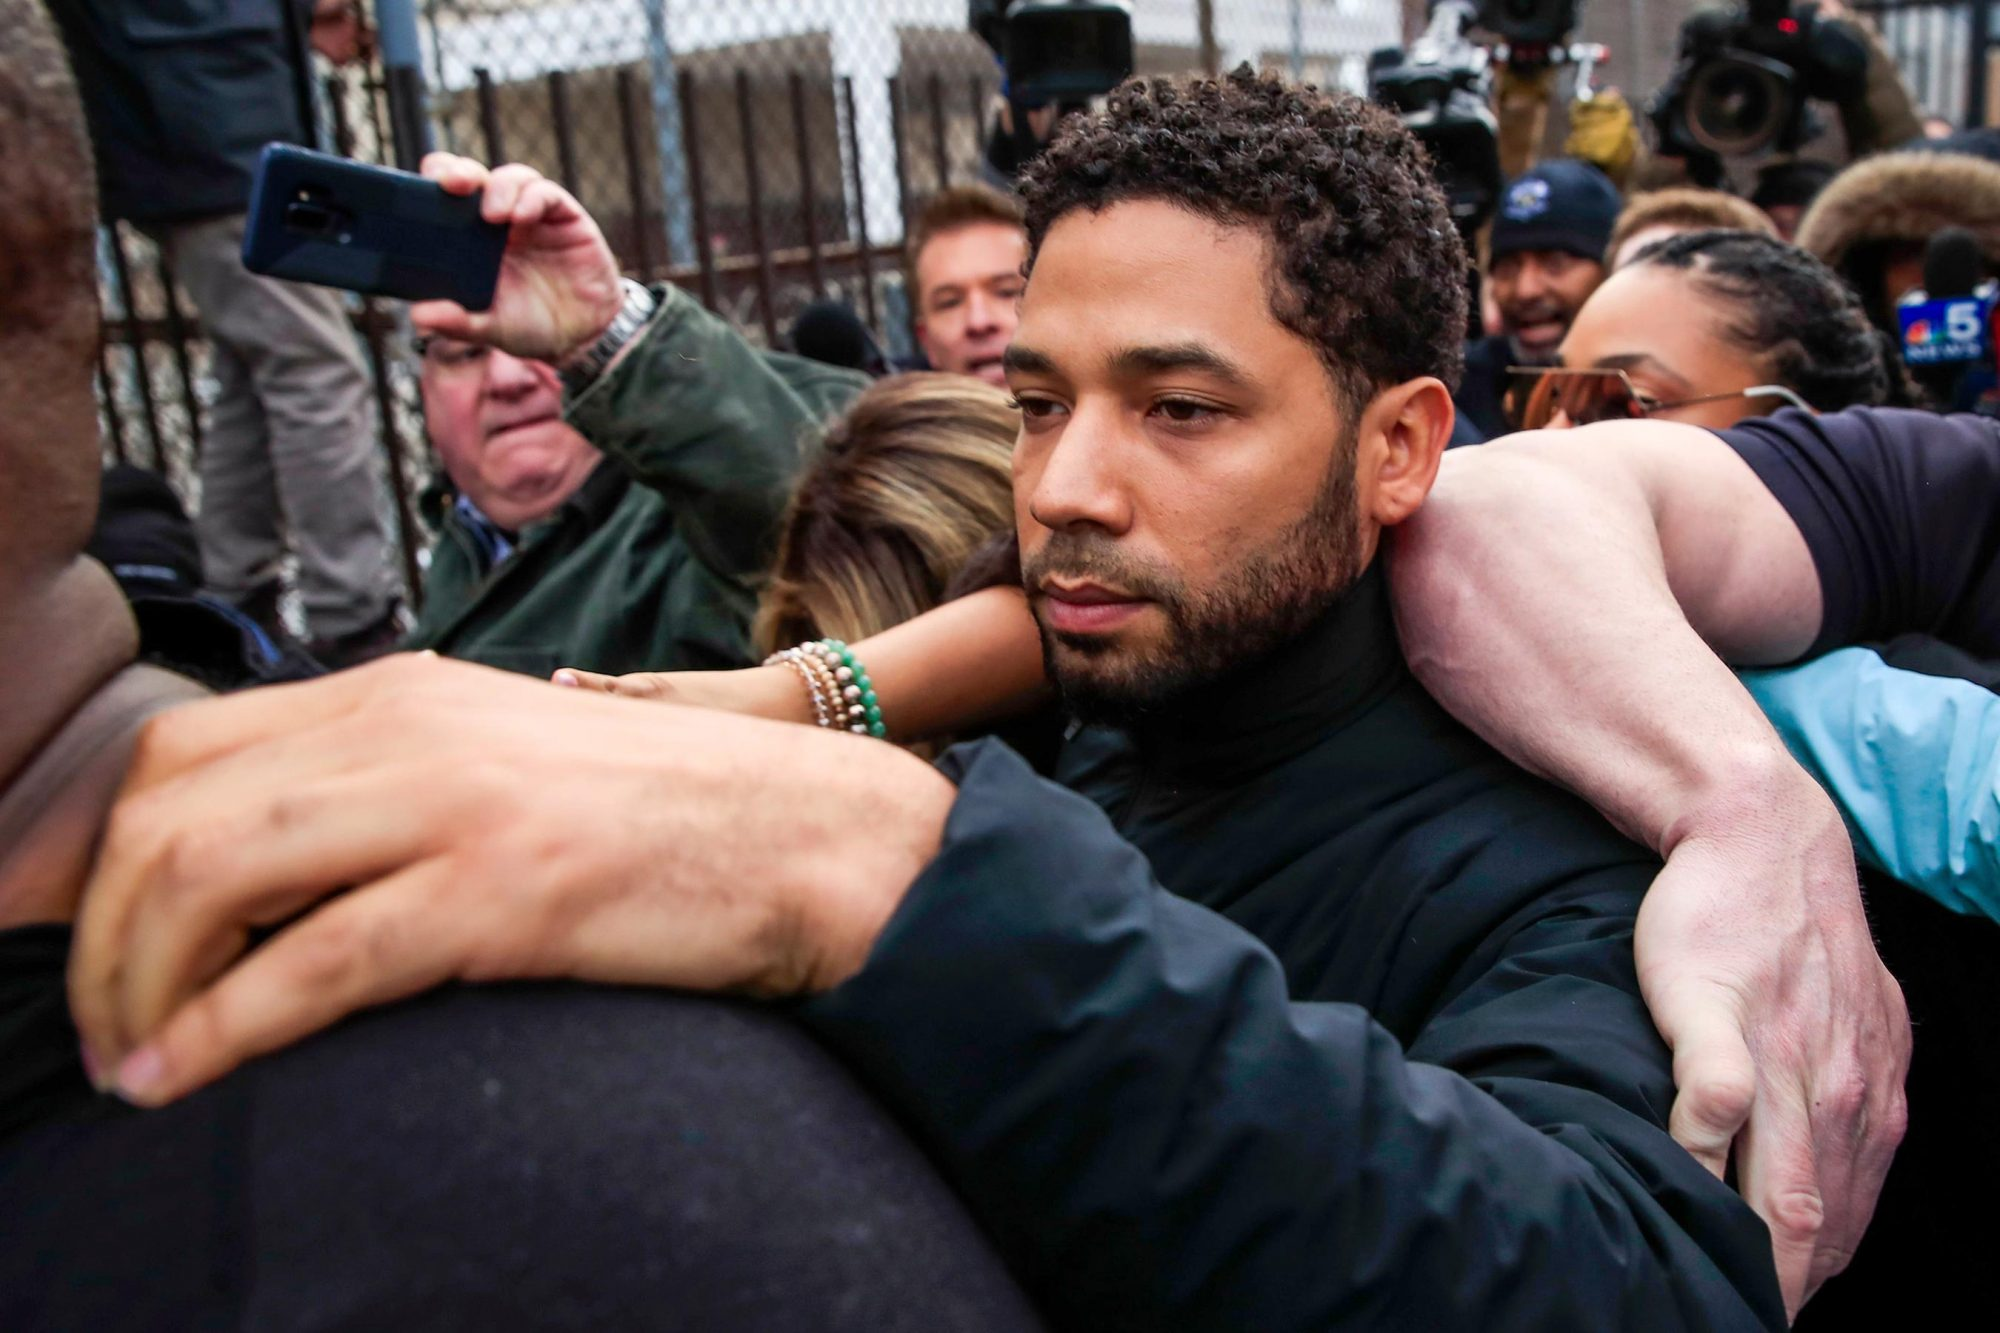 Jussie Smollett charged with felony disorderly conduct, Chicago, USA - 21 Feb 2019